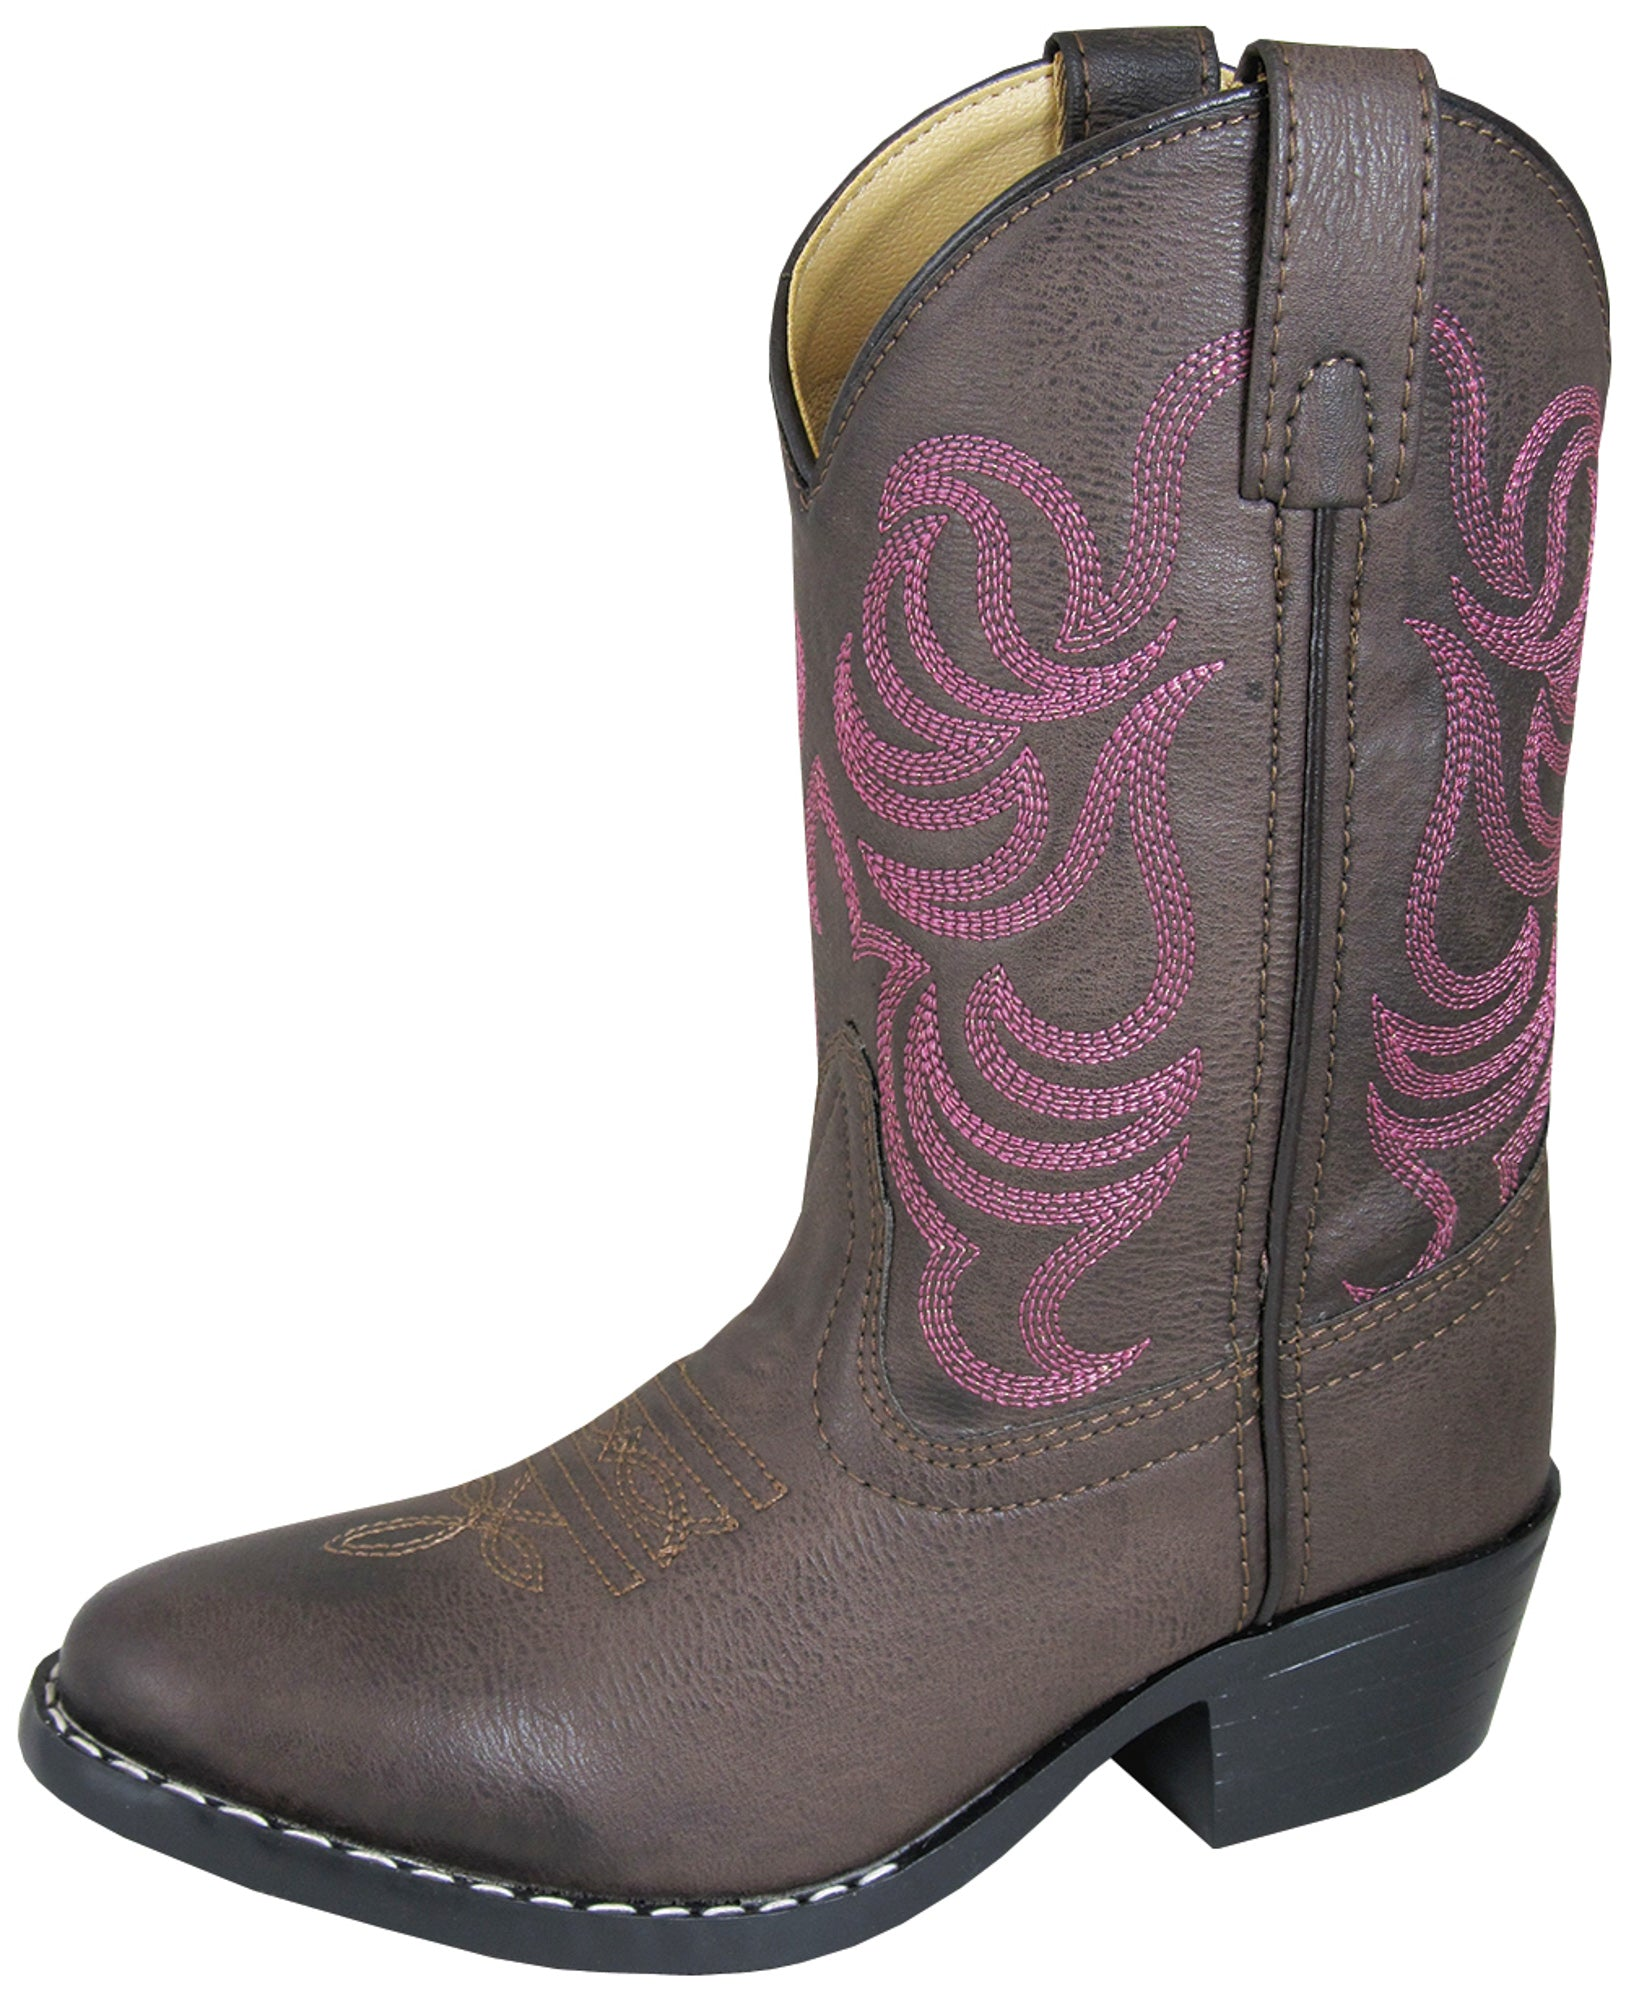 Smoky Mountain Toddler Girls Hopalong Brown//Pink Leather Cowboy Boots